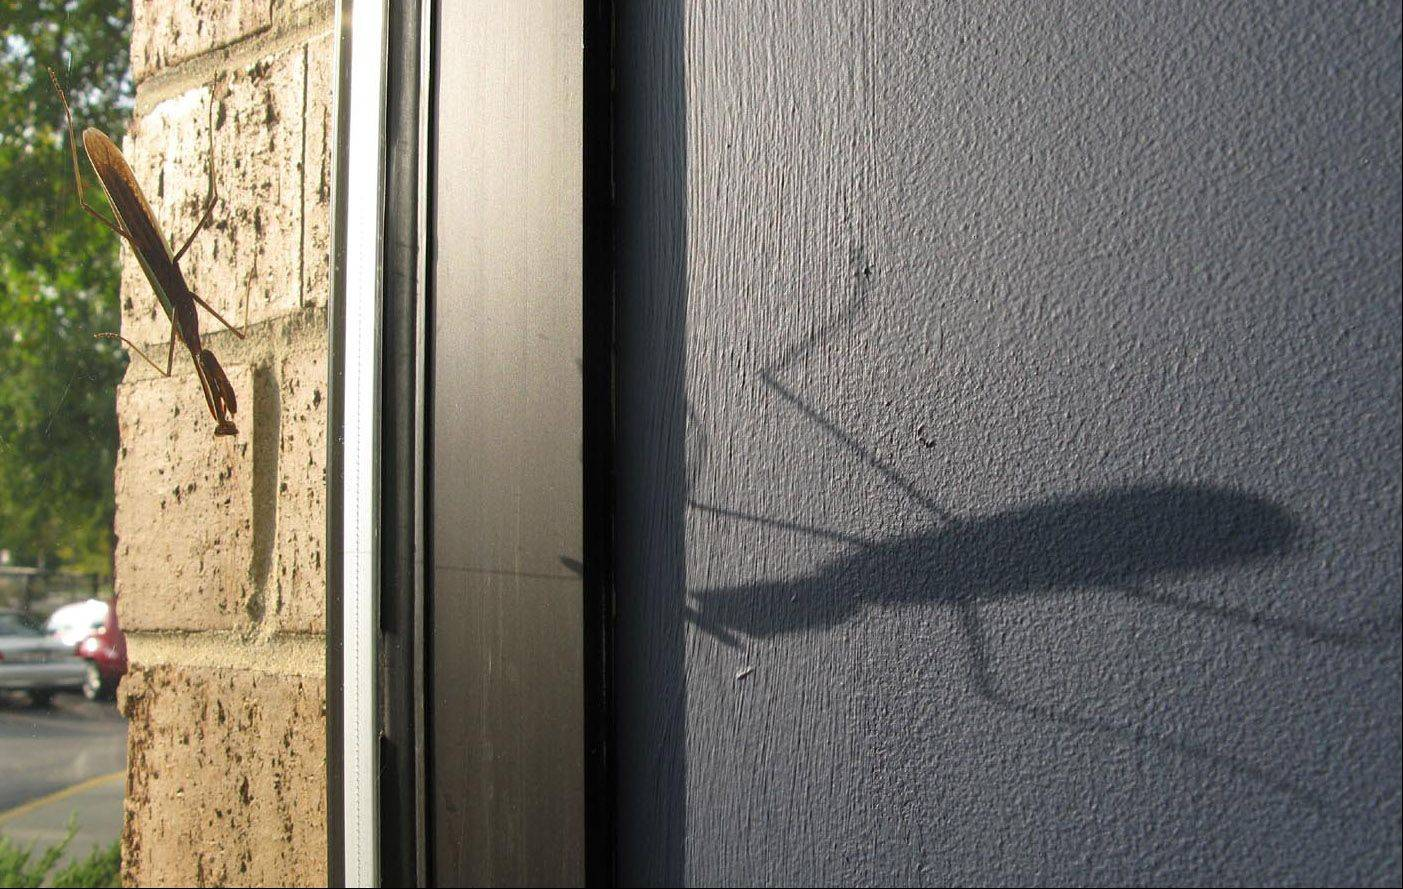 I walked into my office one day and was very startled to see this HUGE bug on my wall. It took a few moments before I realized it was a shadow cast by a praying mantis on the outside of my window. (I had fun scaring my co-workers that afternoon!)